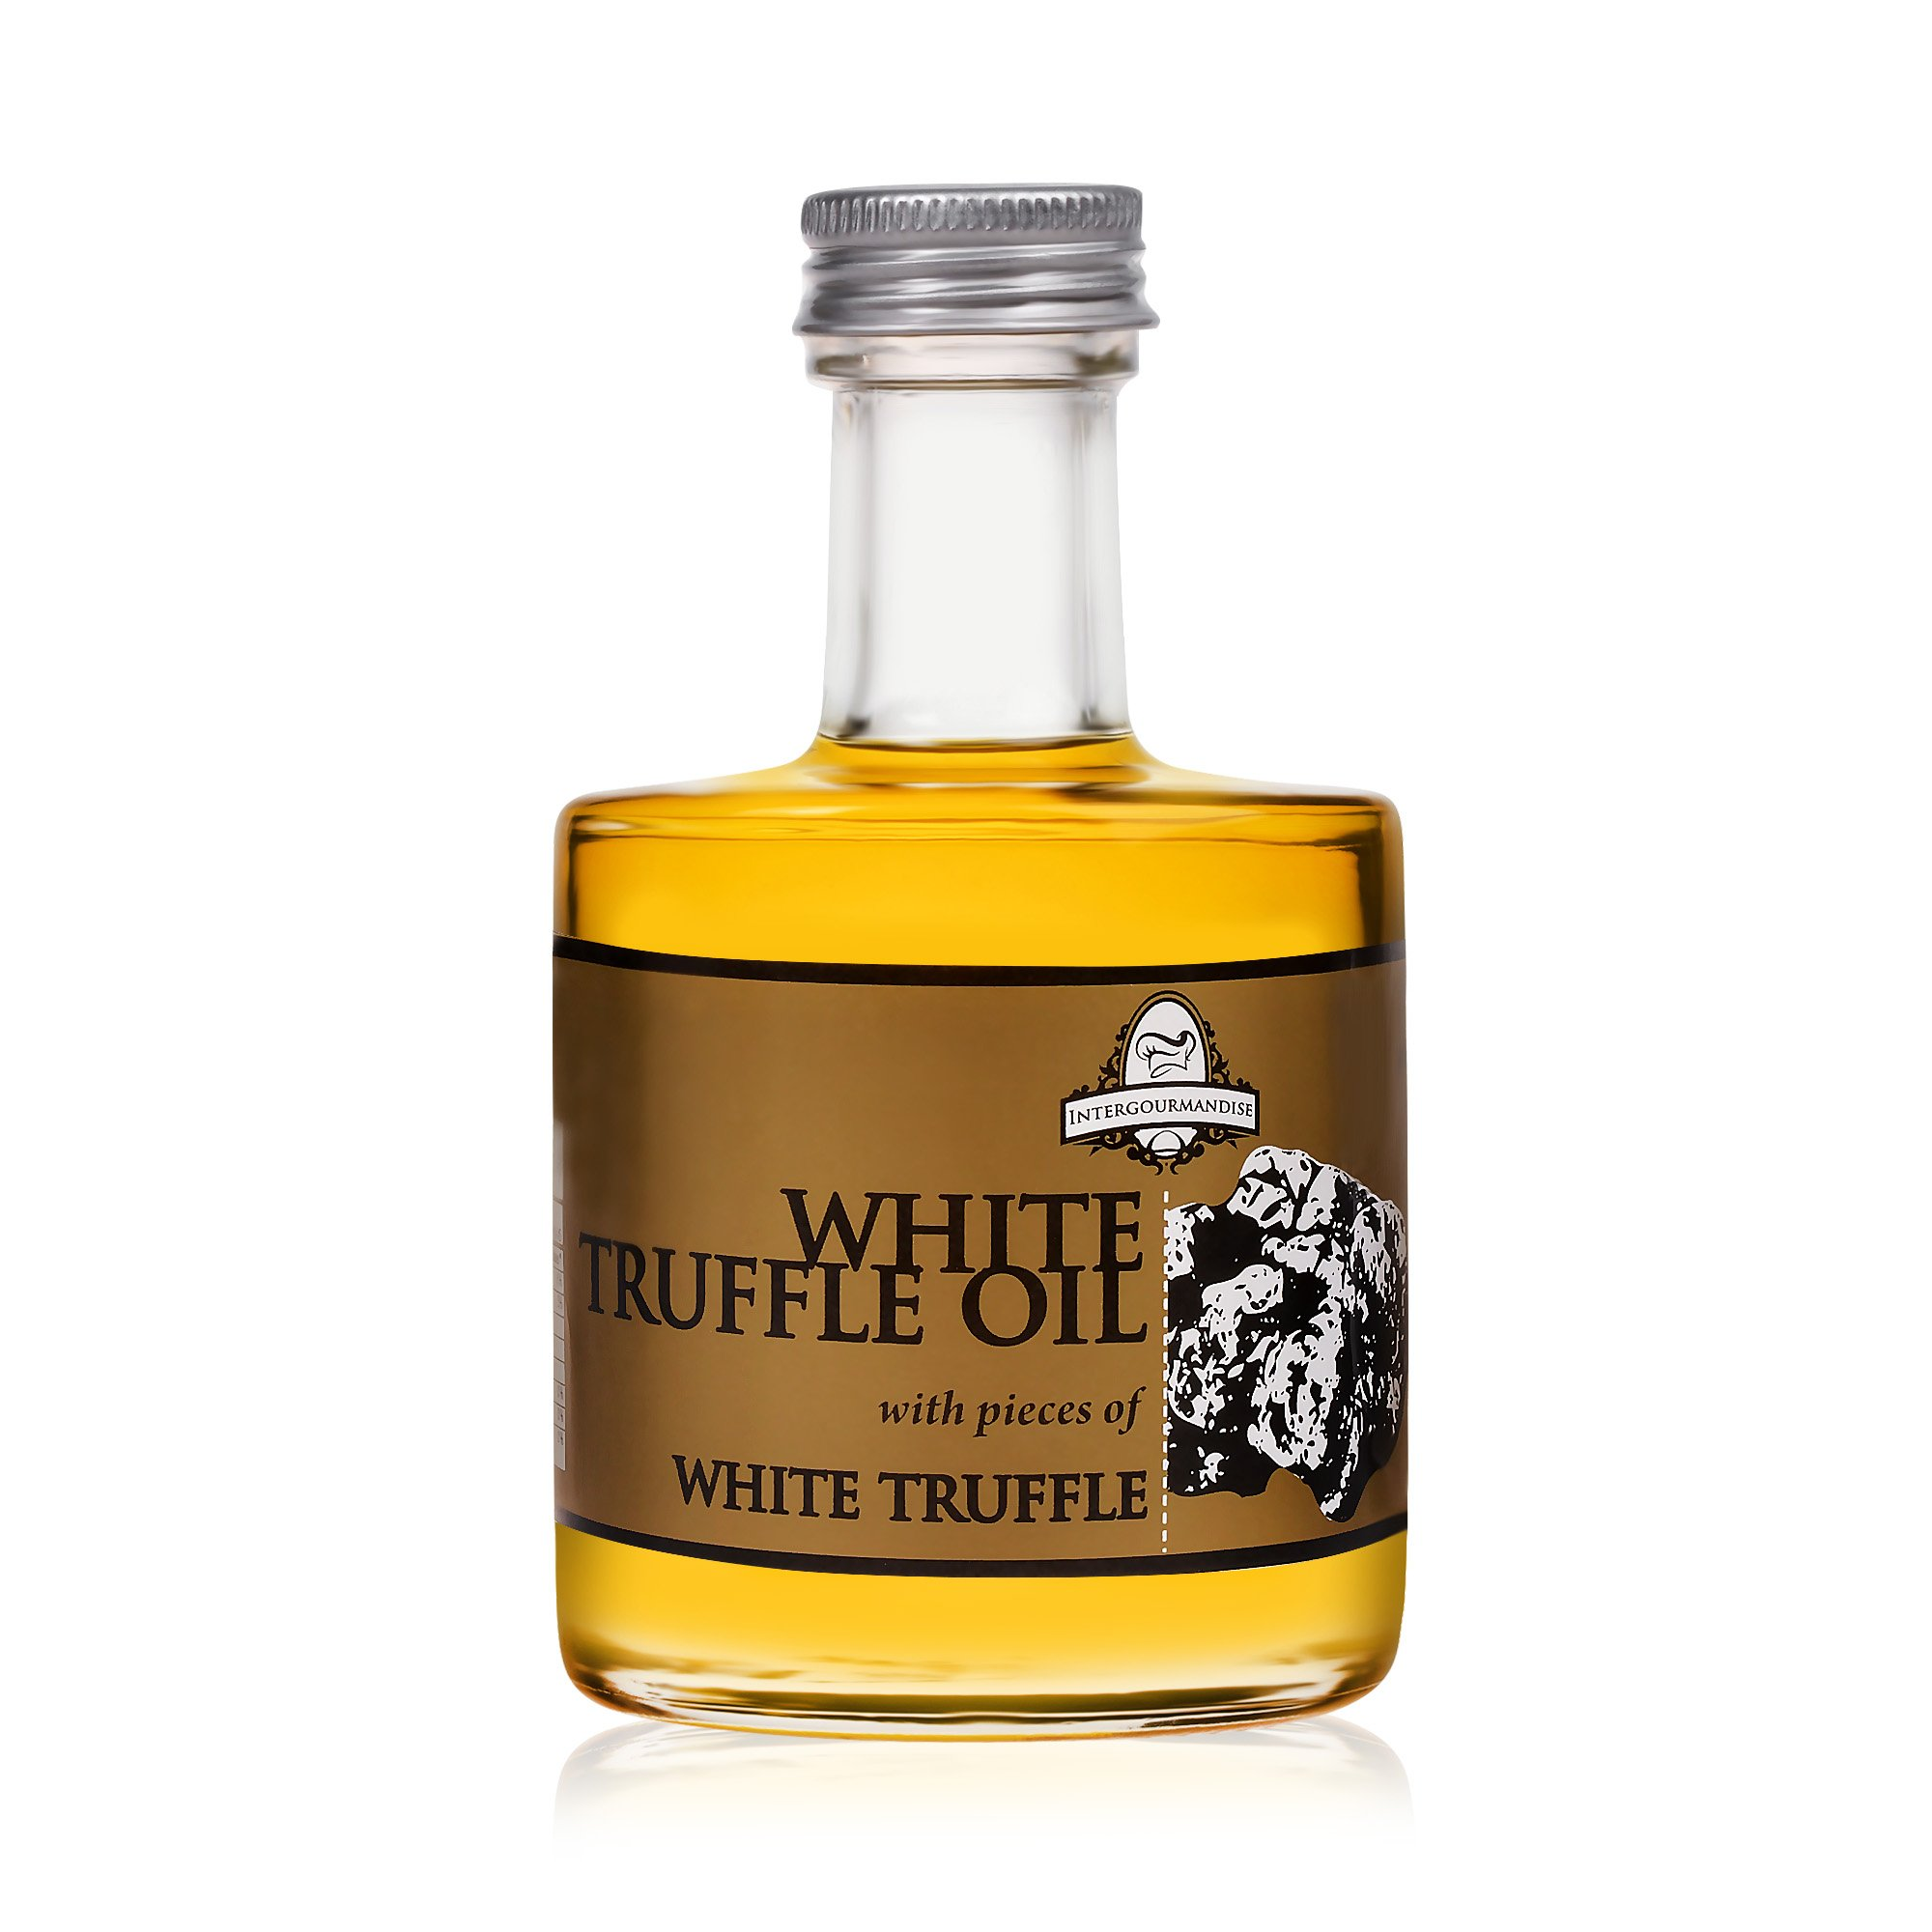 White truffle oil | 3.5 oz. / 100 ml. Glass Bottle | Super Concentrated | InterGourmandise